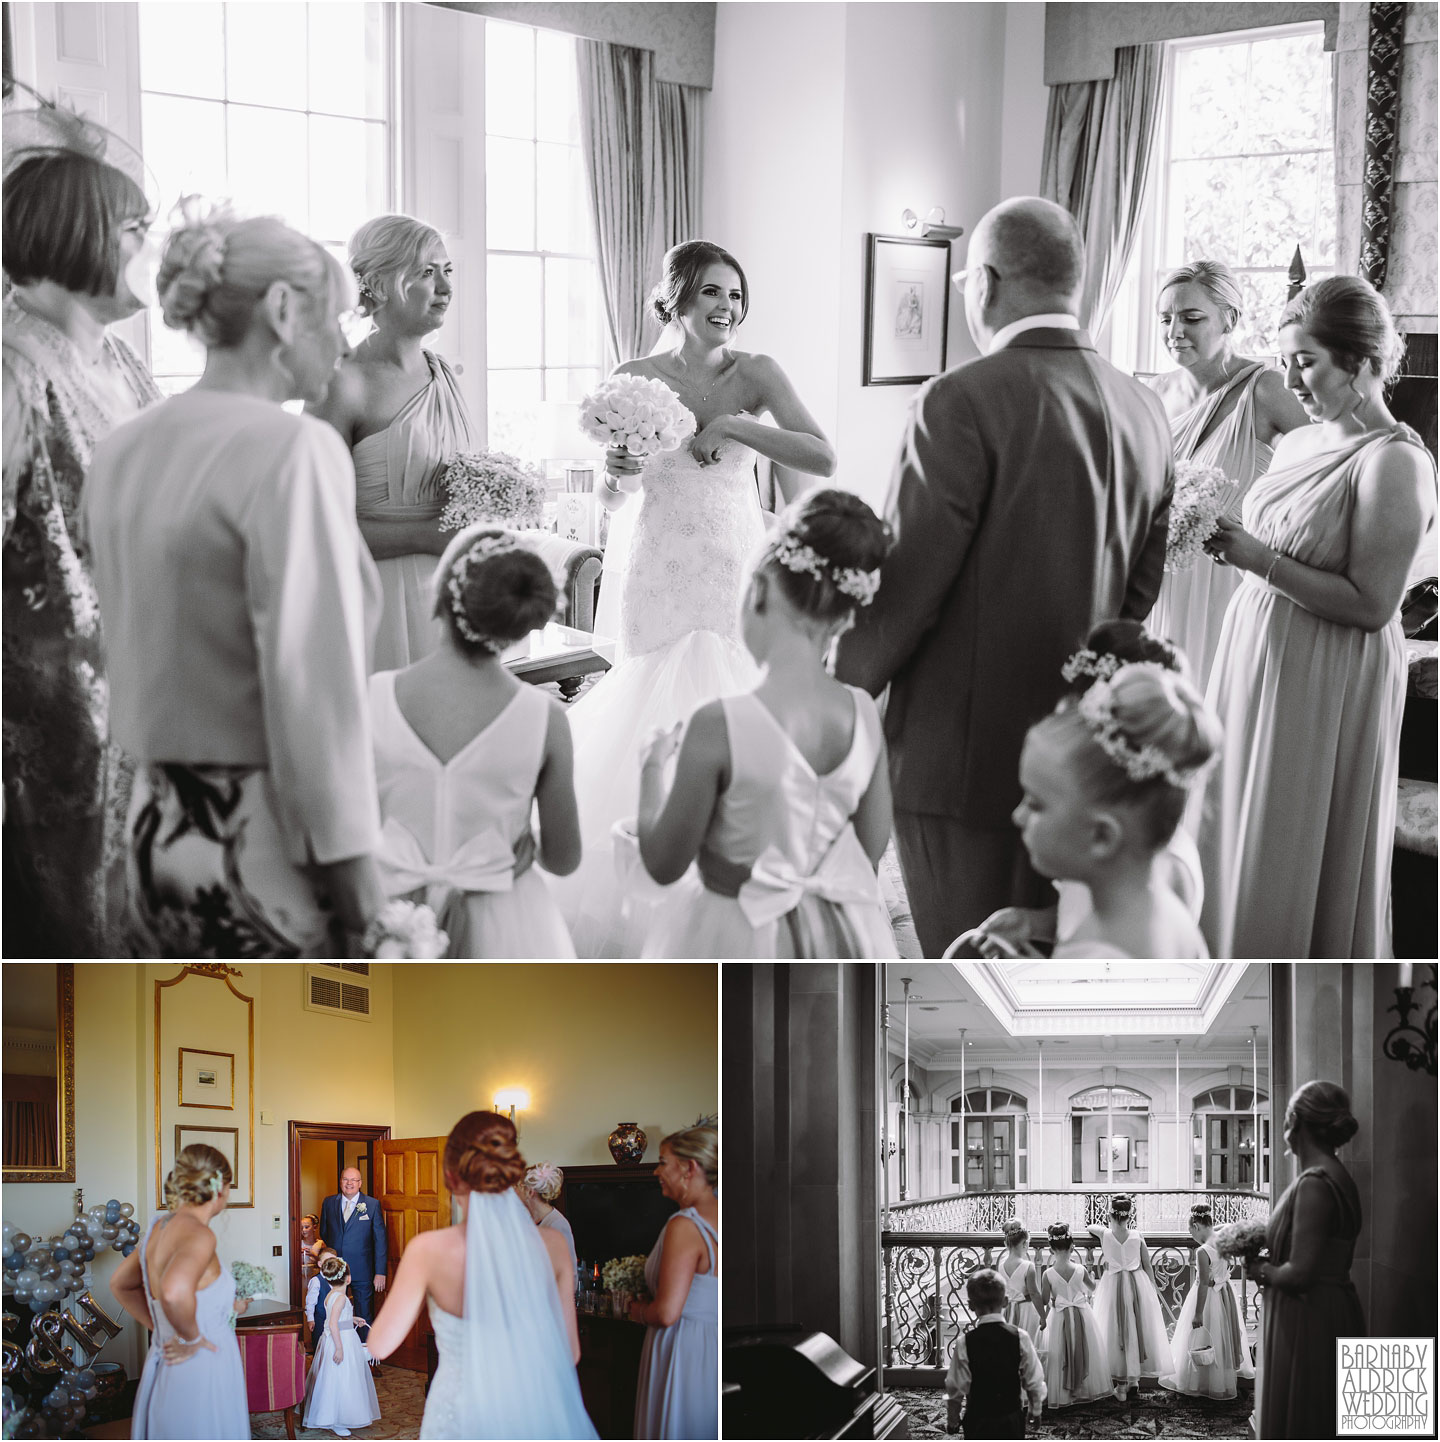 Dad sees his daughter at her oulton Hall wedding in Yorkshire